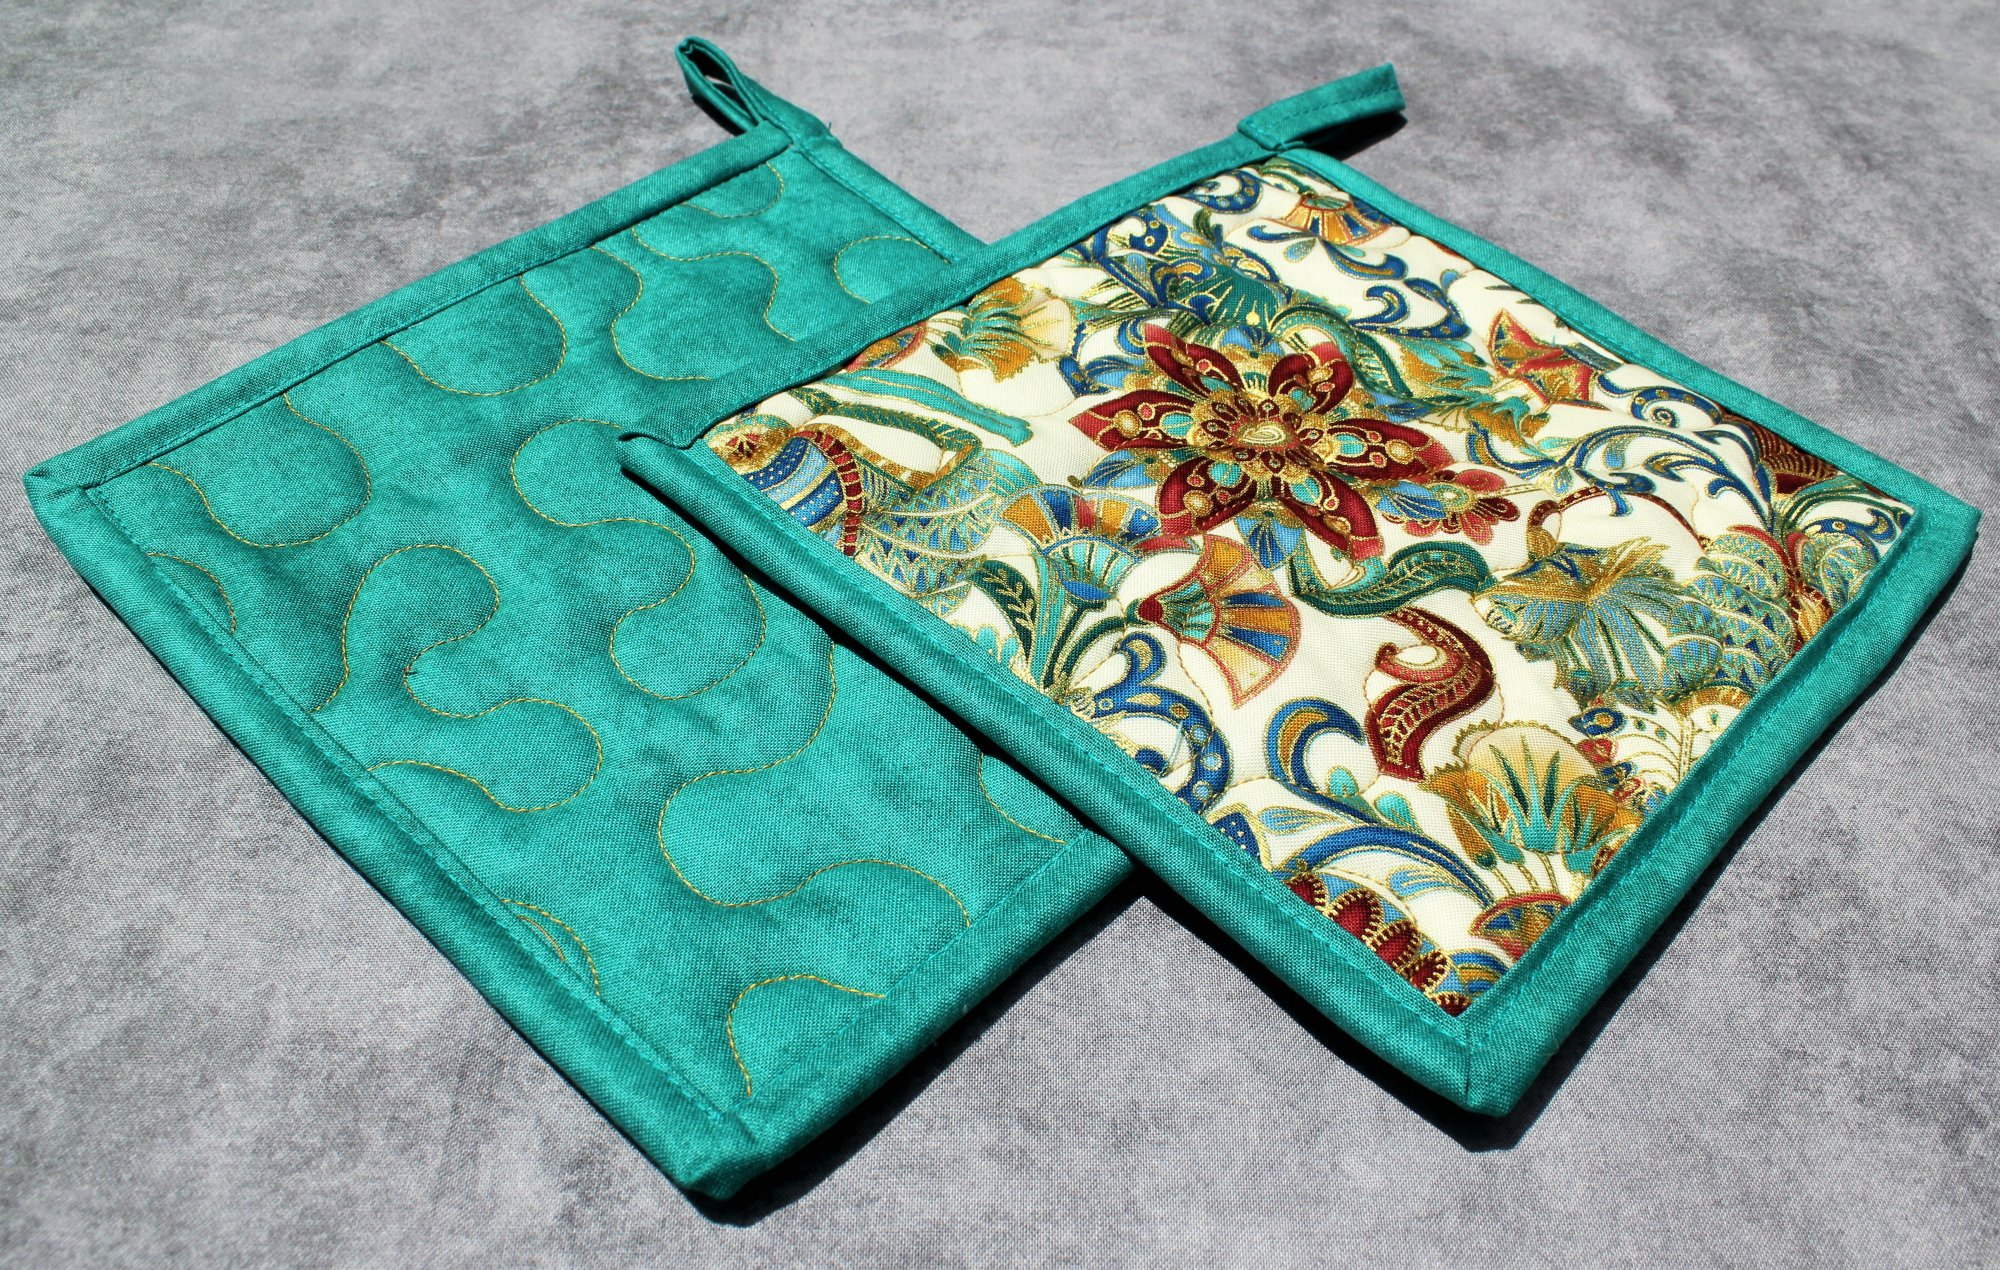 Red/Gold/Blue Flowers and Swirls Potholders Set of 2